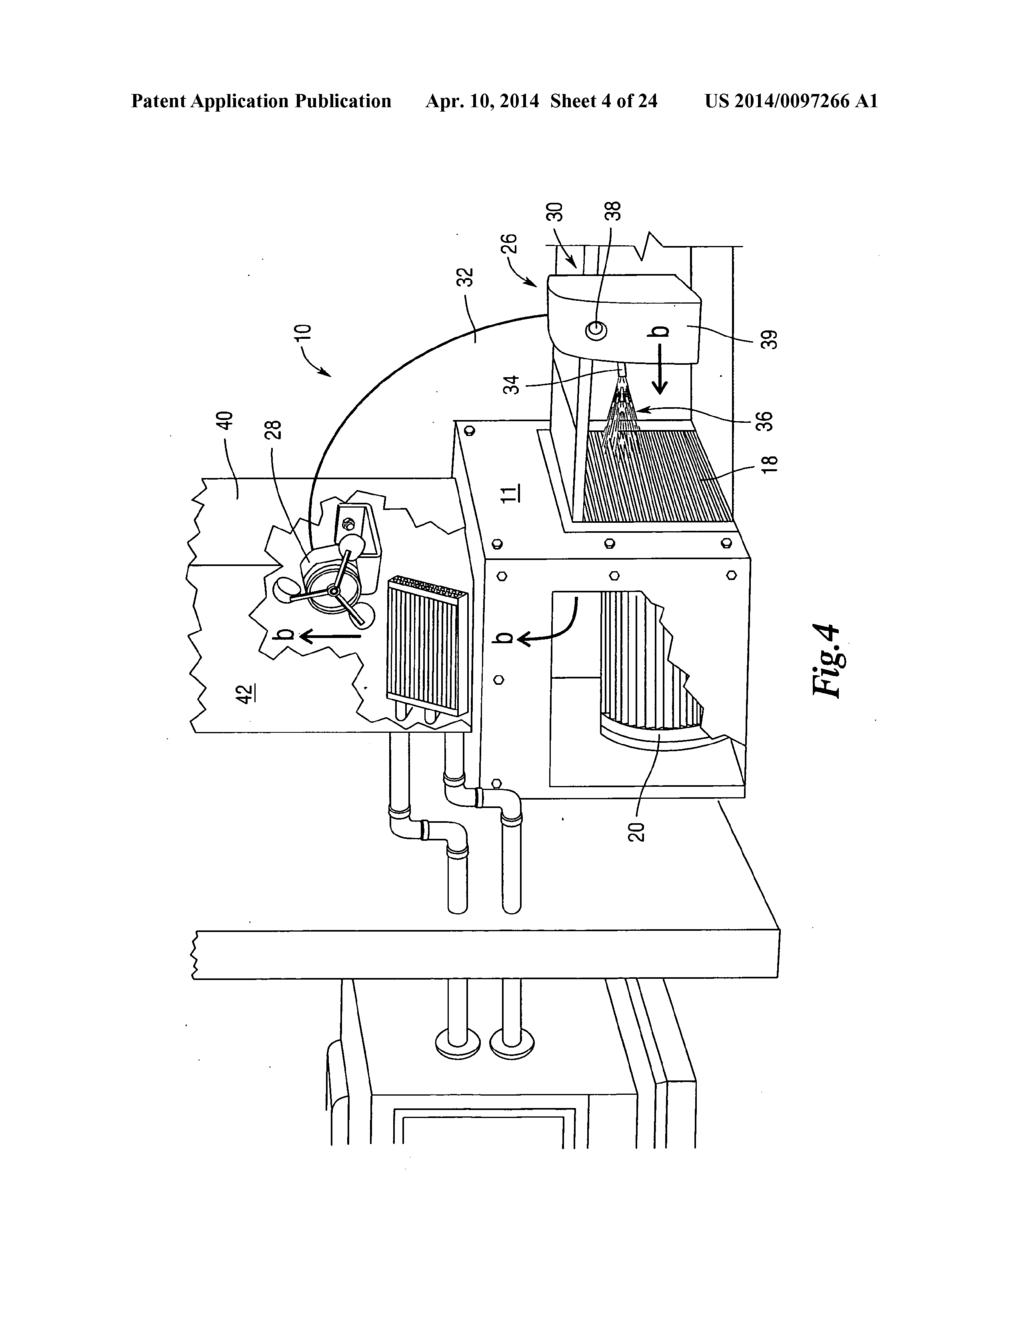 hight resolution of scent disperser arrangement in an hvac system diagram schematic and image 05